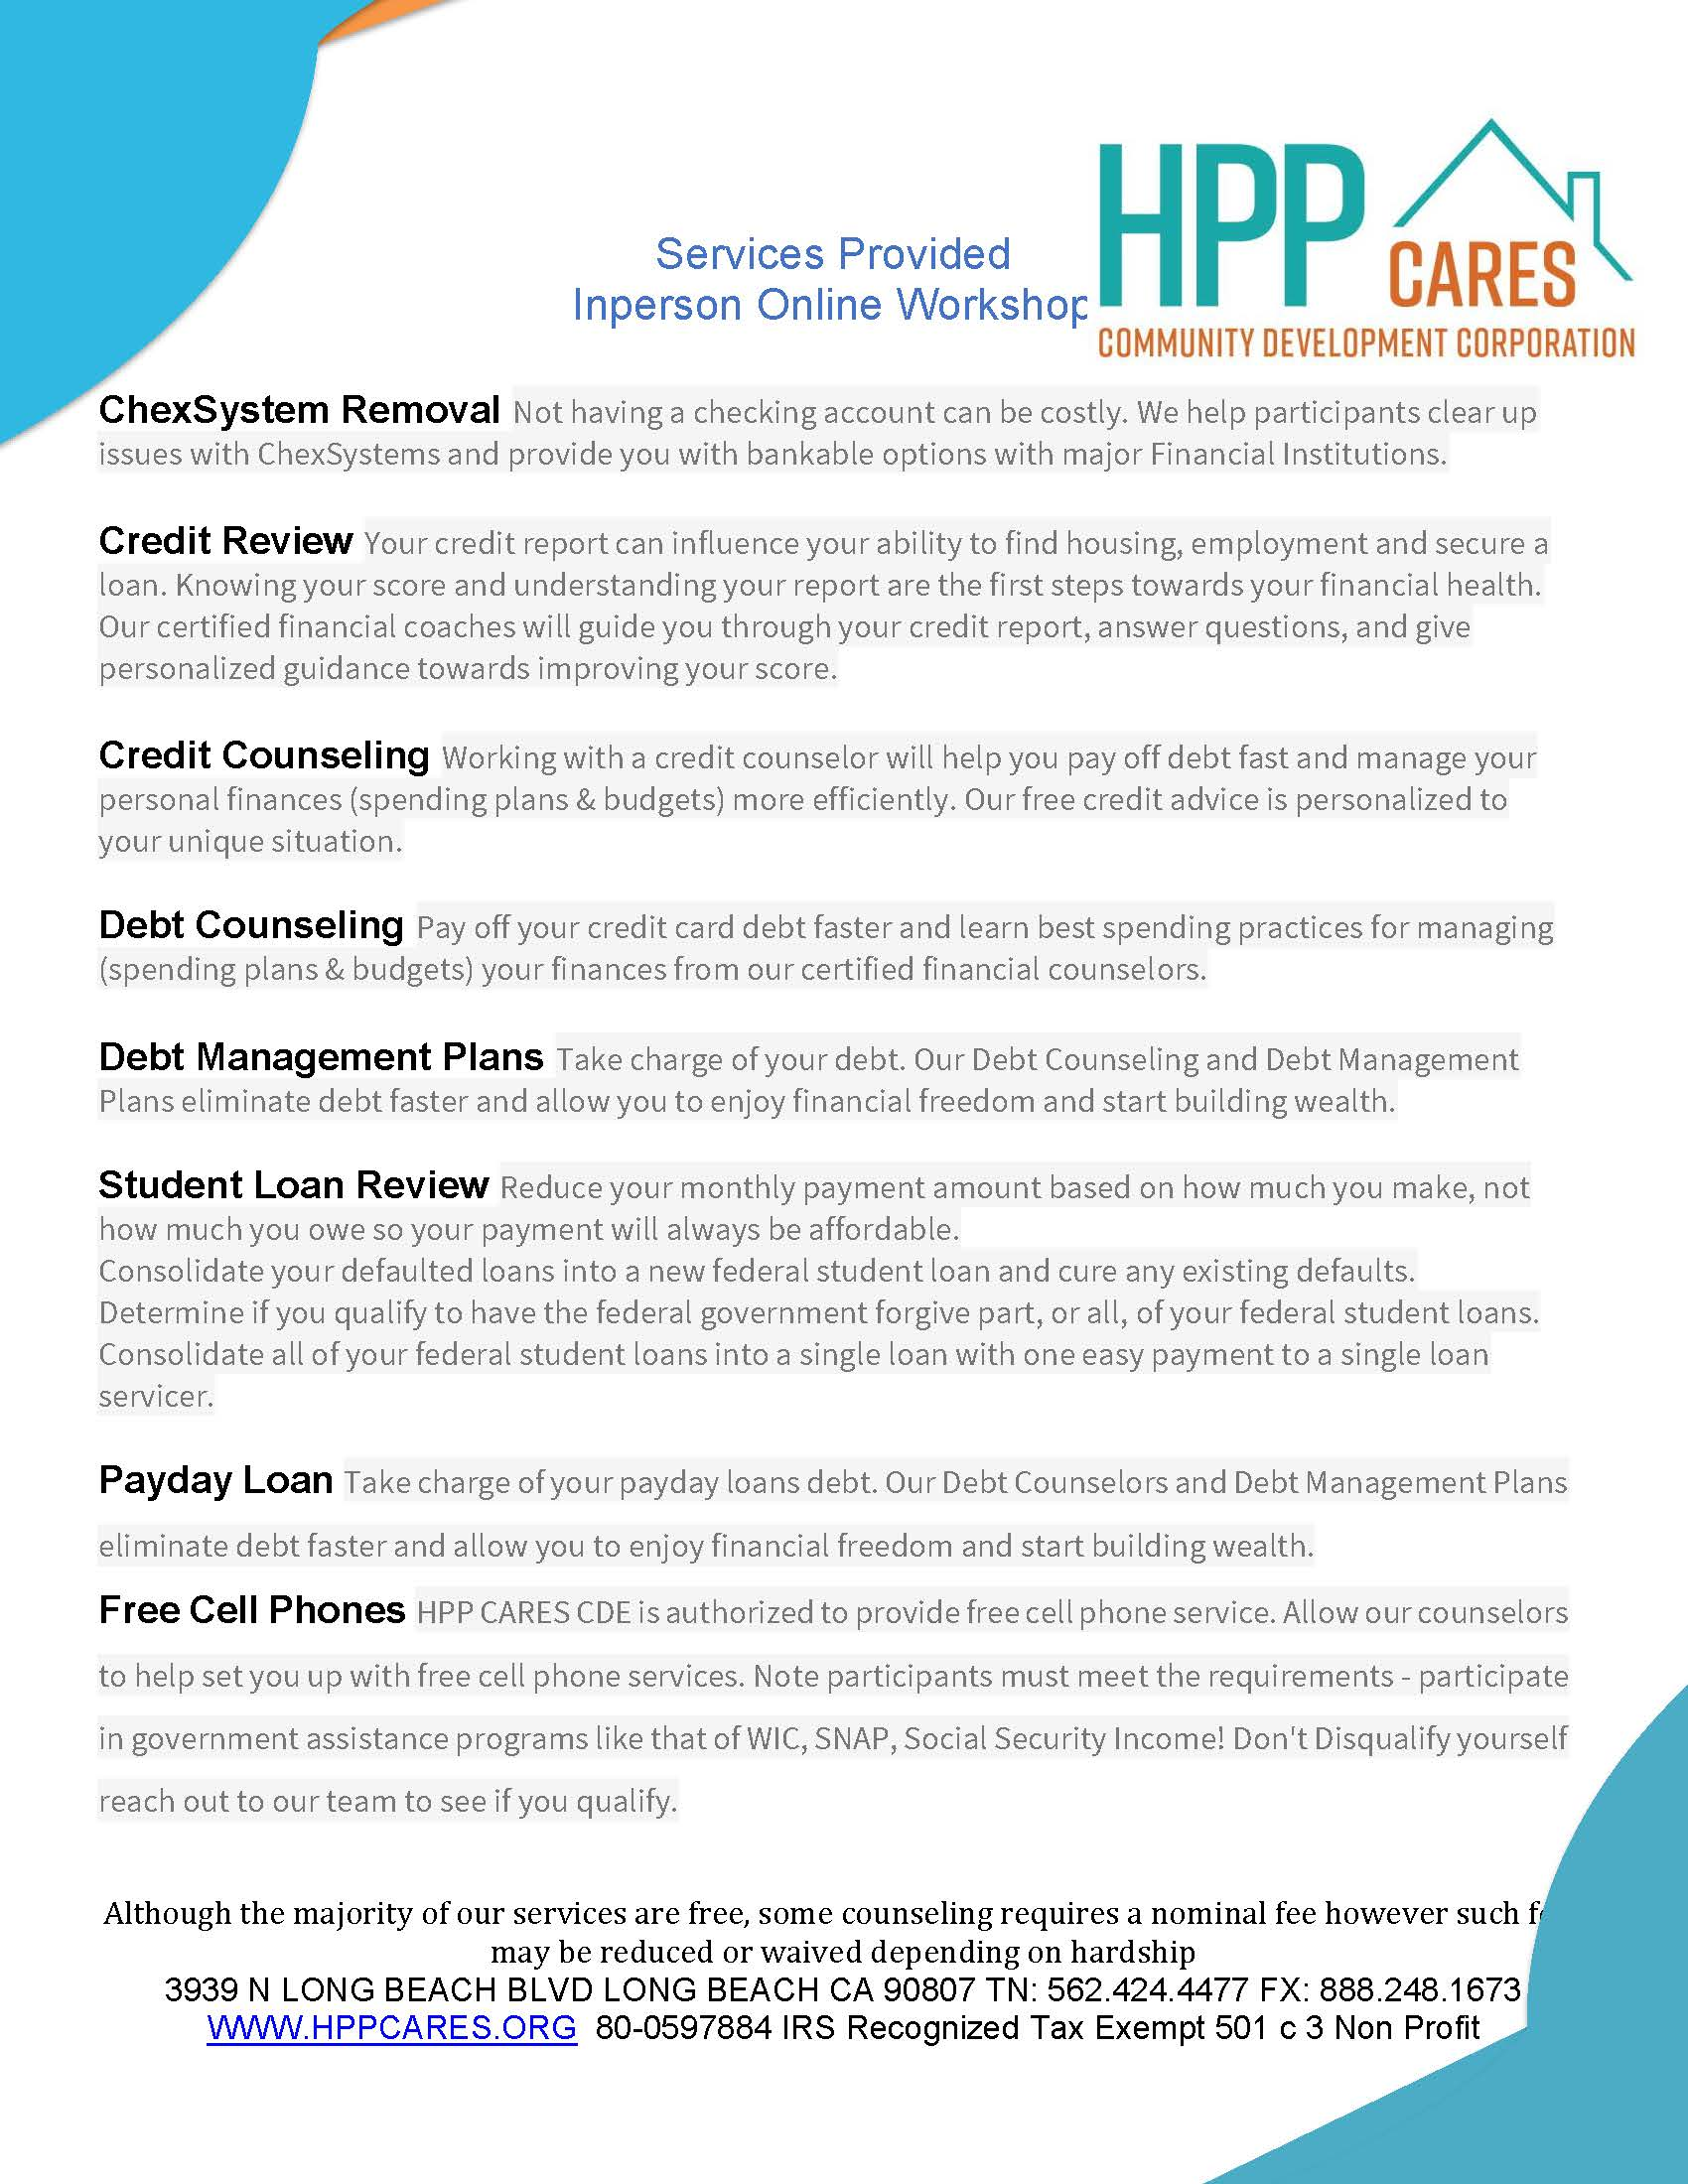 HPP Cares Operates as a Nonprofit 501c3 Services Provided 072019.jpg